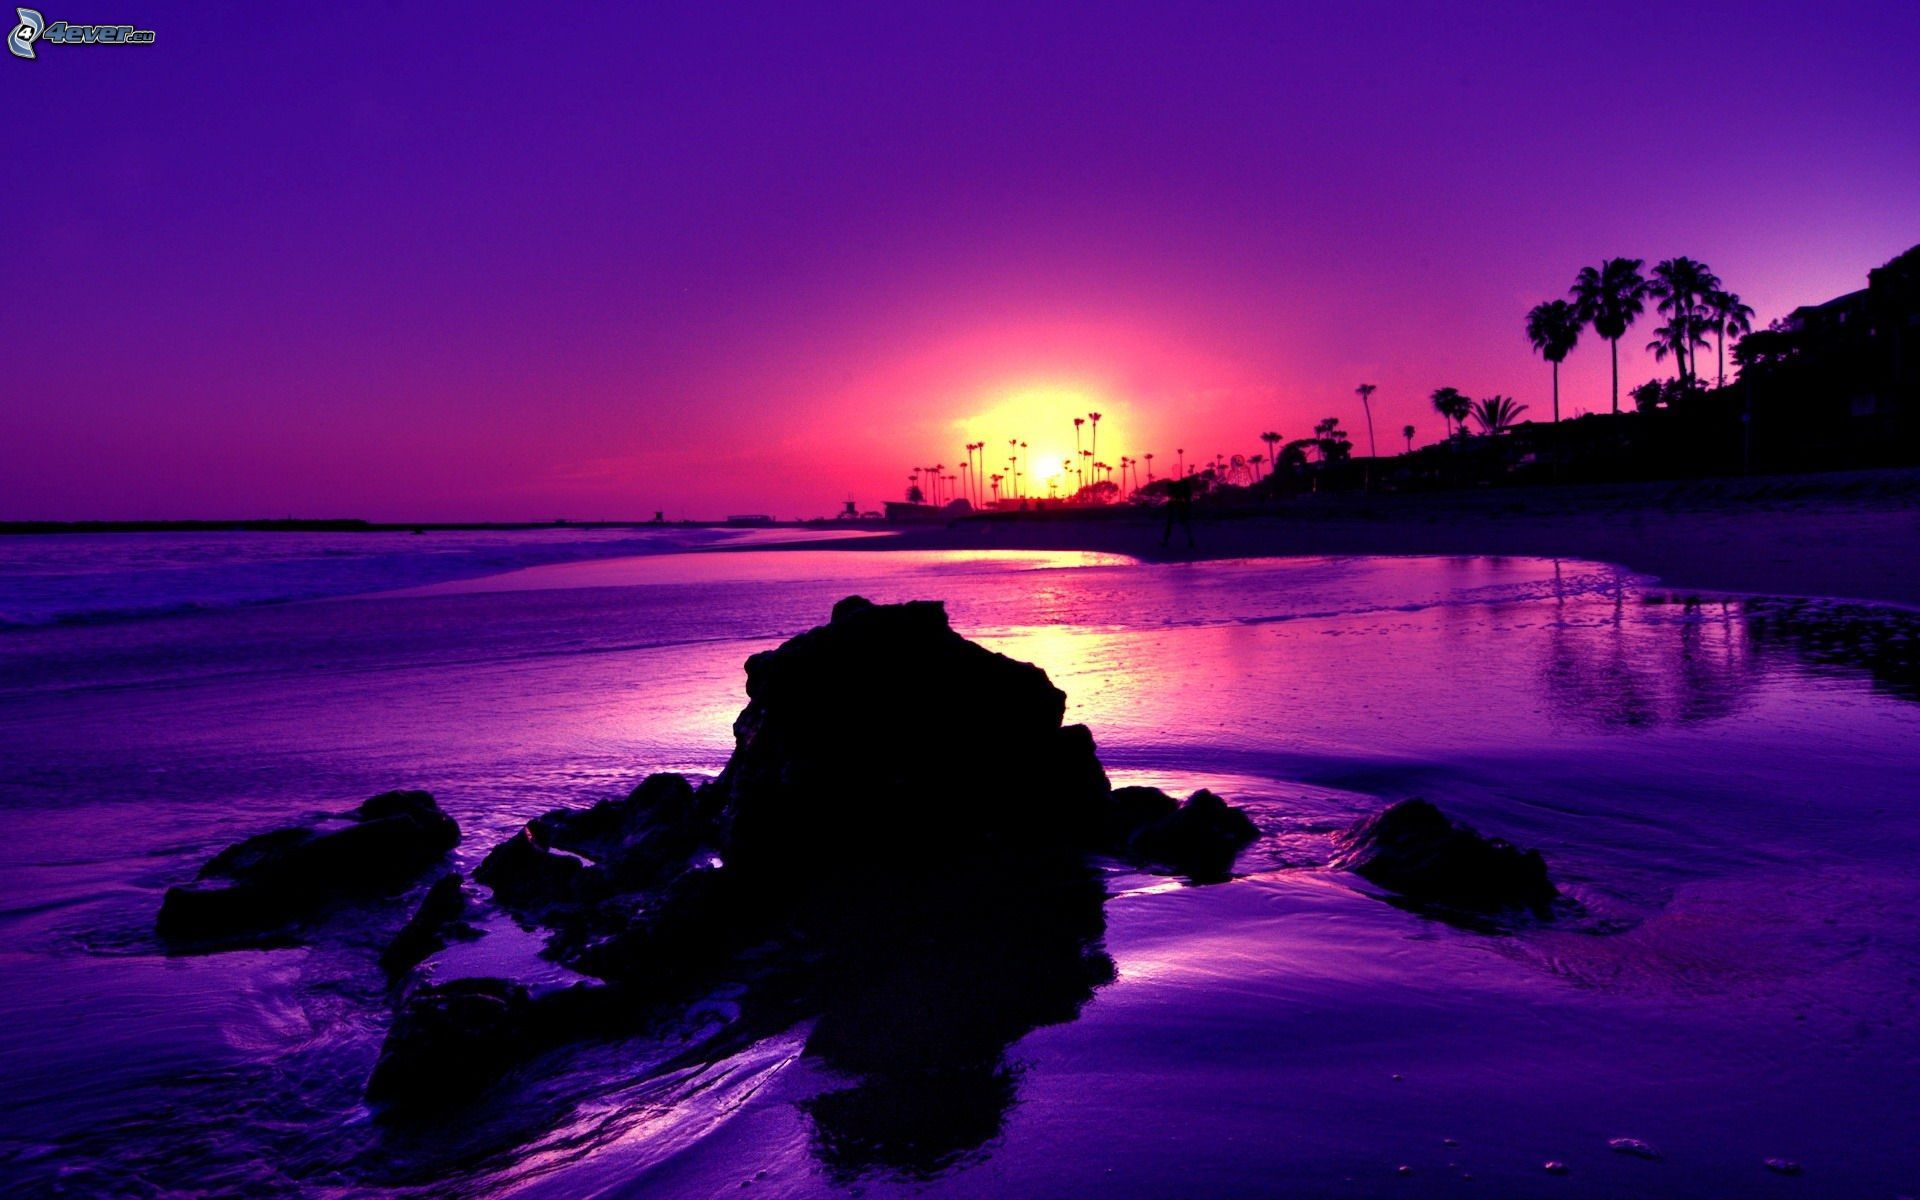 Purple Ocean Sunset HD Wallpaper Background Images 1920x1200